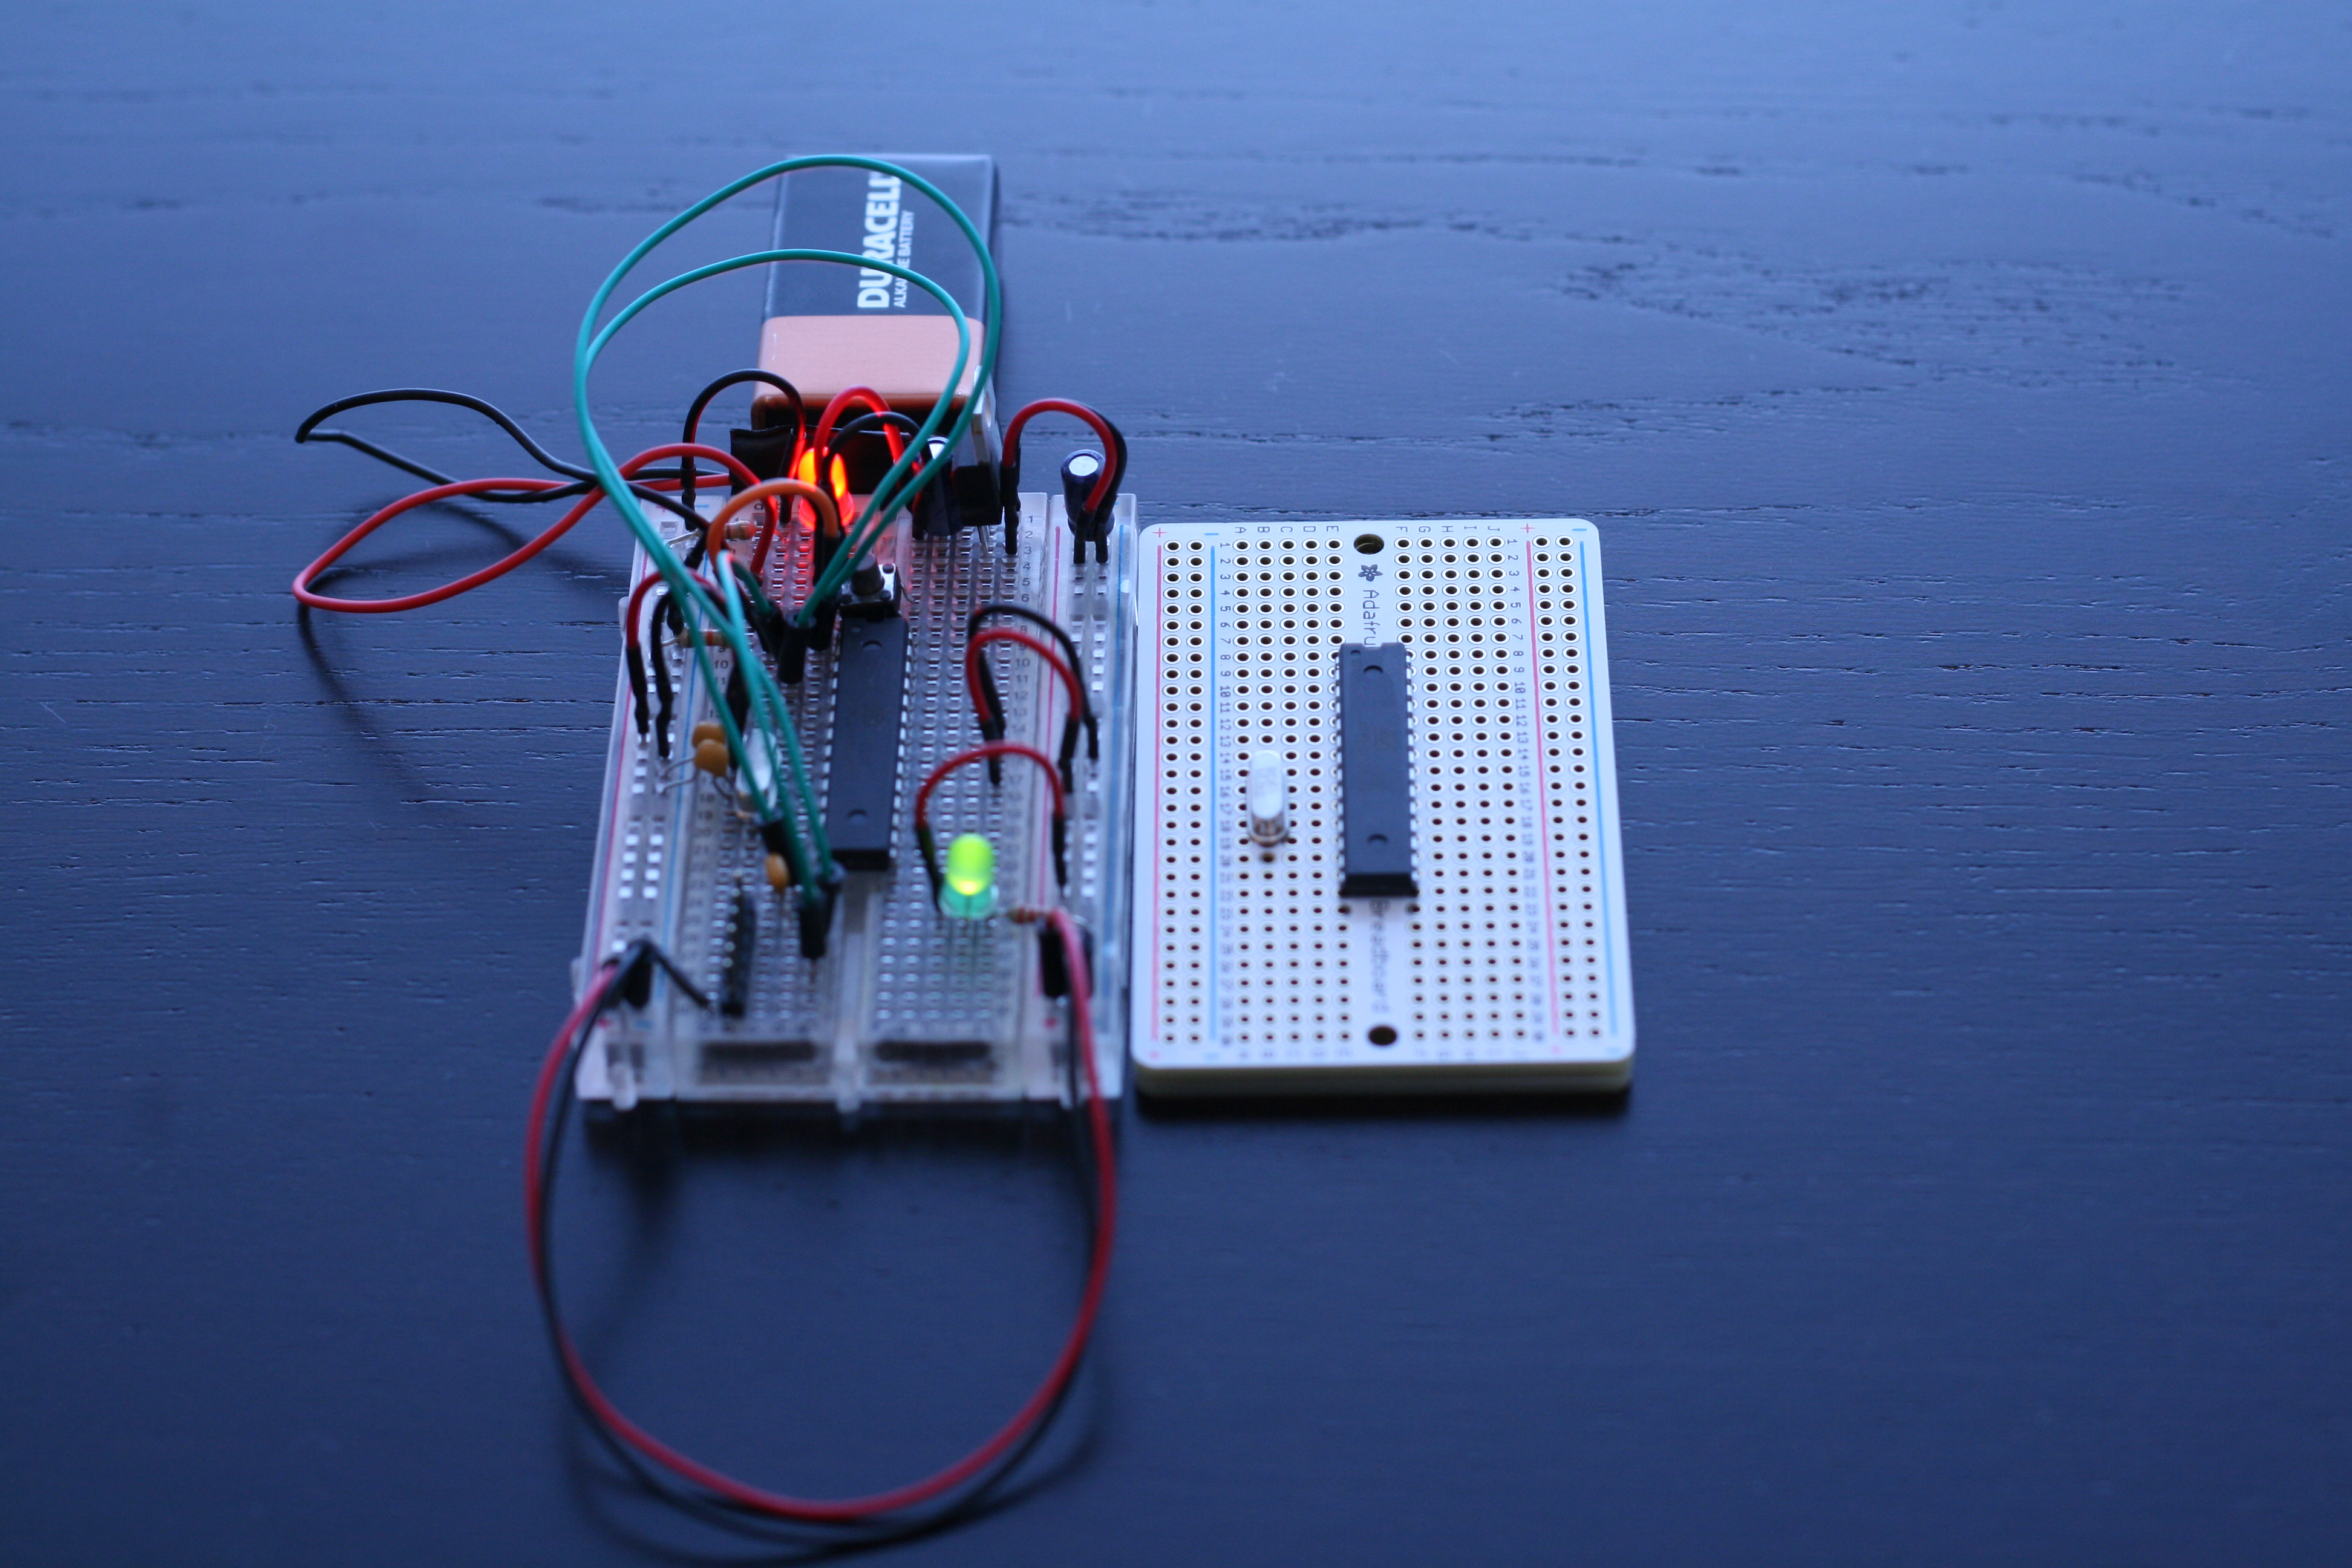 New in the Maker Shed: Perma-Proto Boards